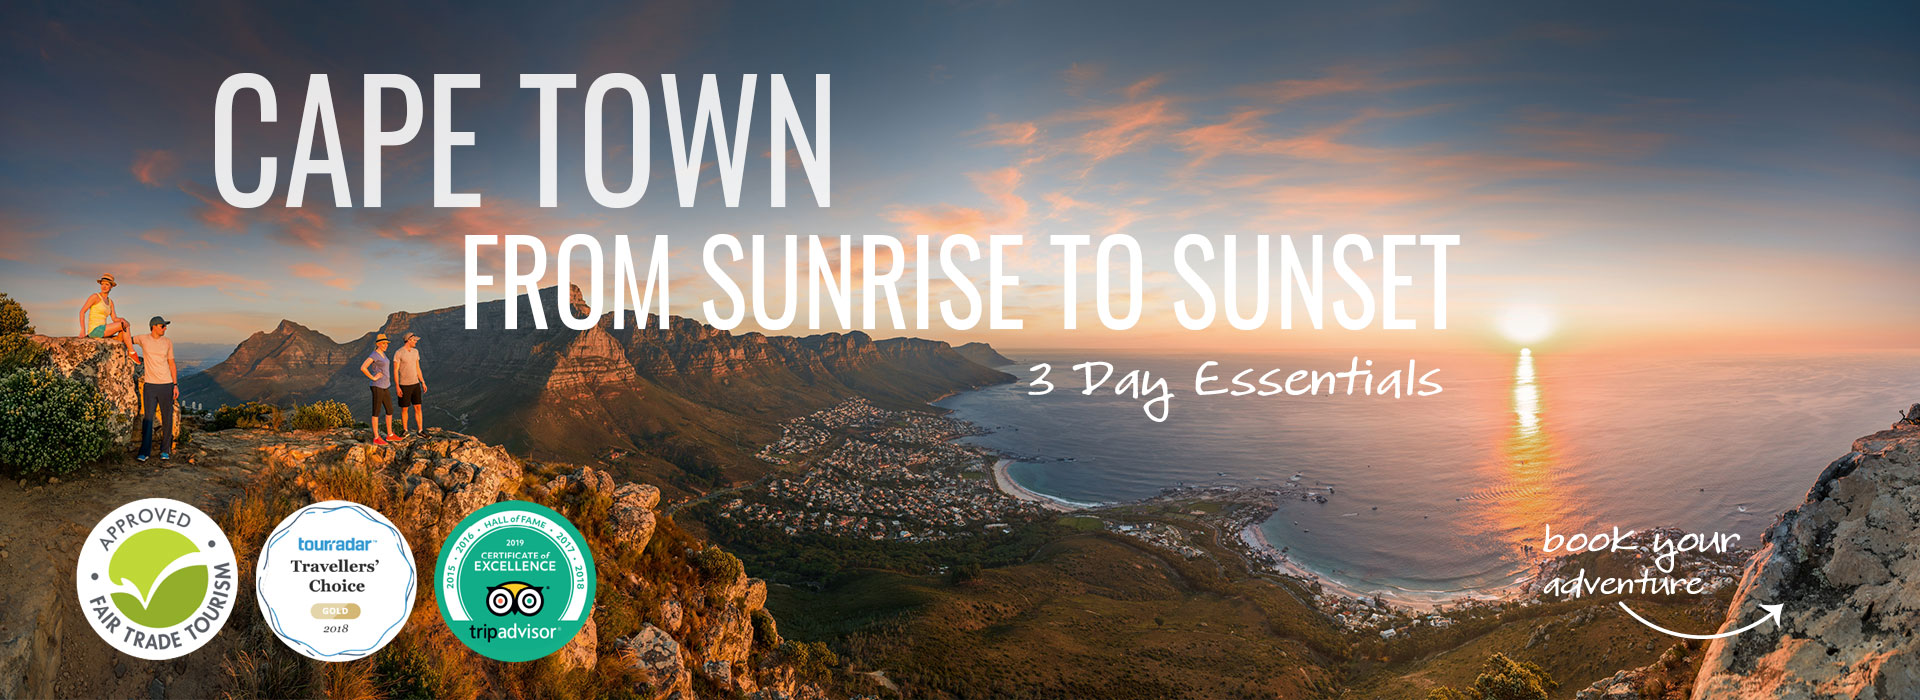 cape town tours south africa